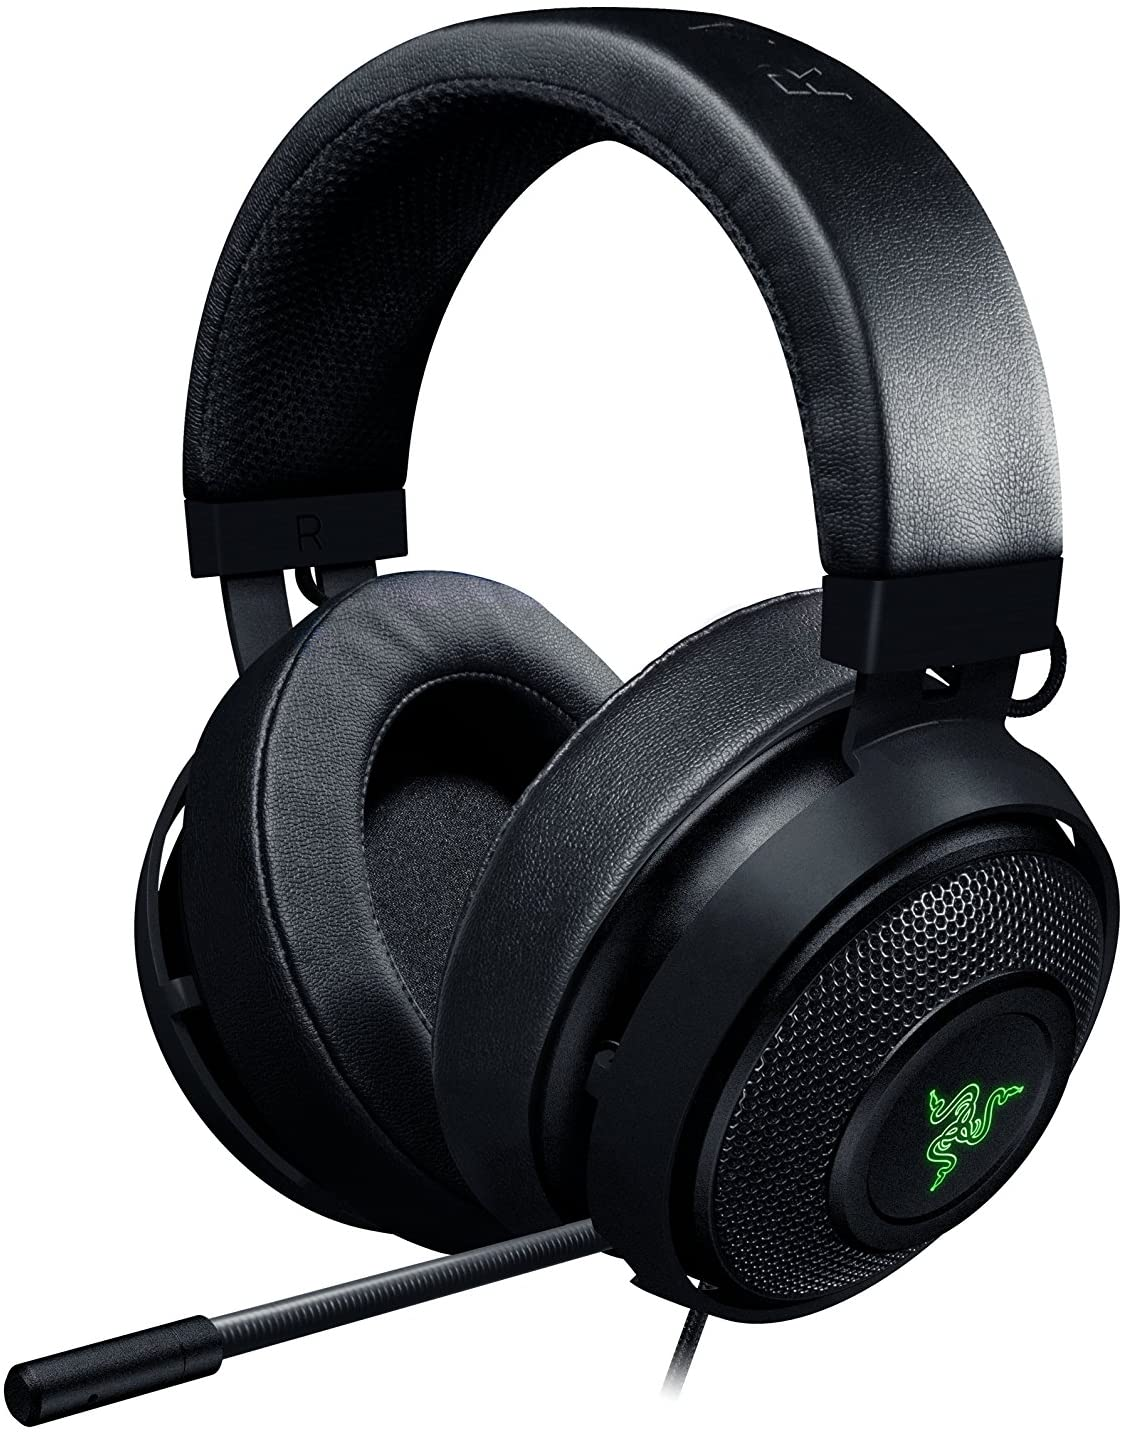 Razer Kraken 7.1 Chroma V2 Surround Sound Gaming Wired Headset RZ04-02060200